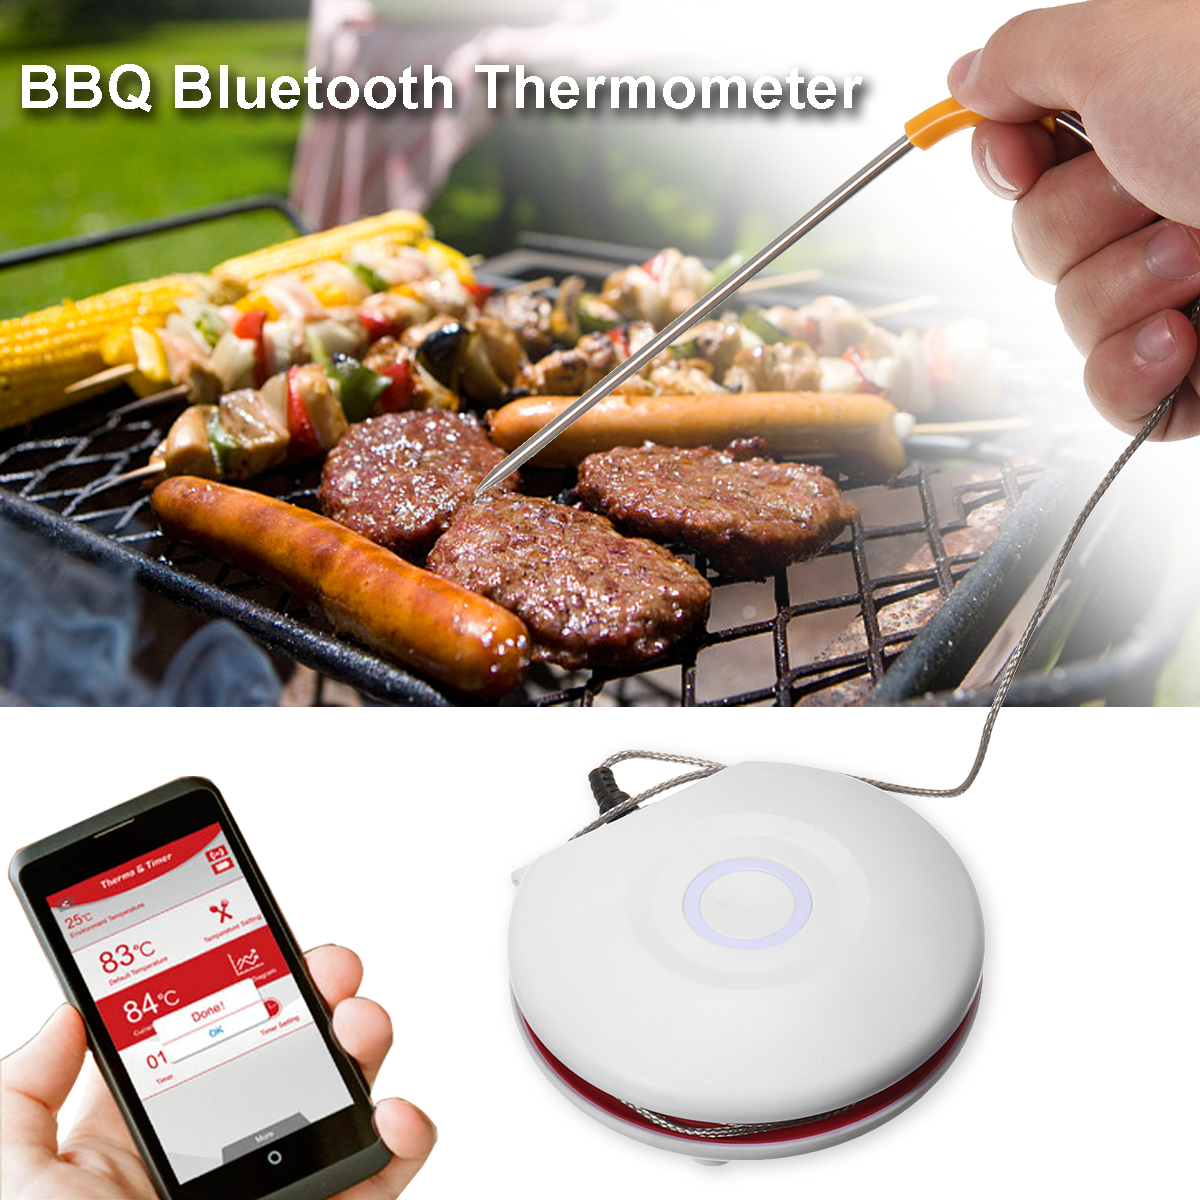 50 ℃ -500 ℃150 - 1000 F Barbecue BBQ Smoker Grill Thermometer Oven Temperature Gauge